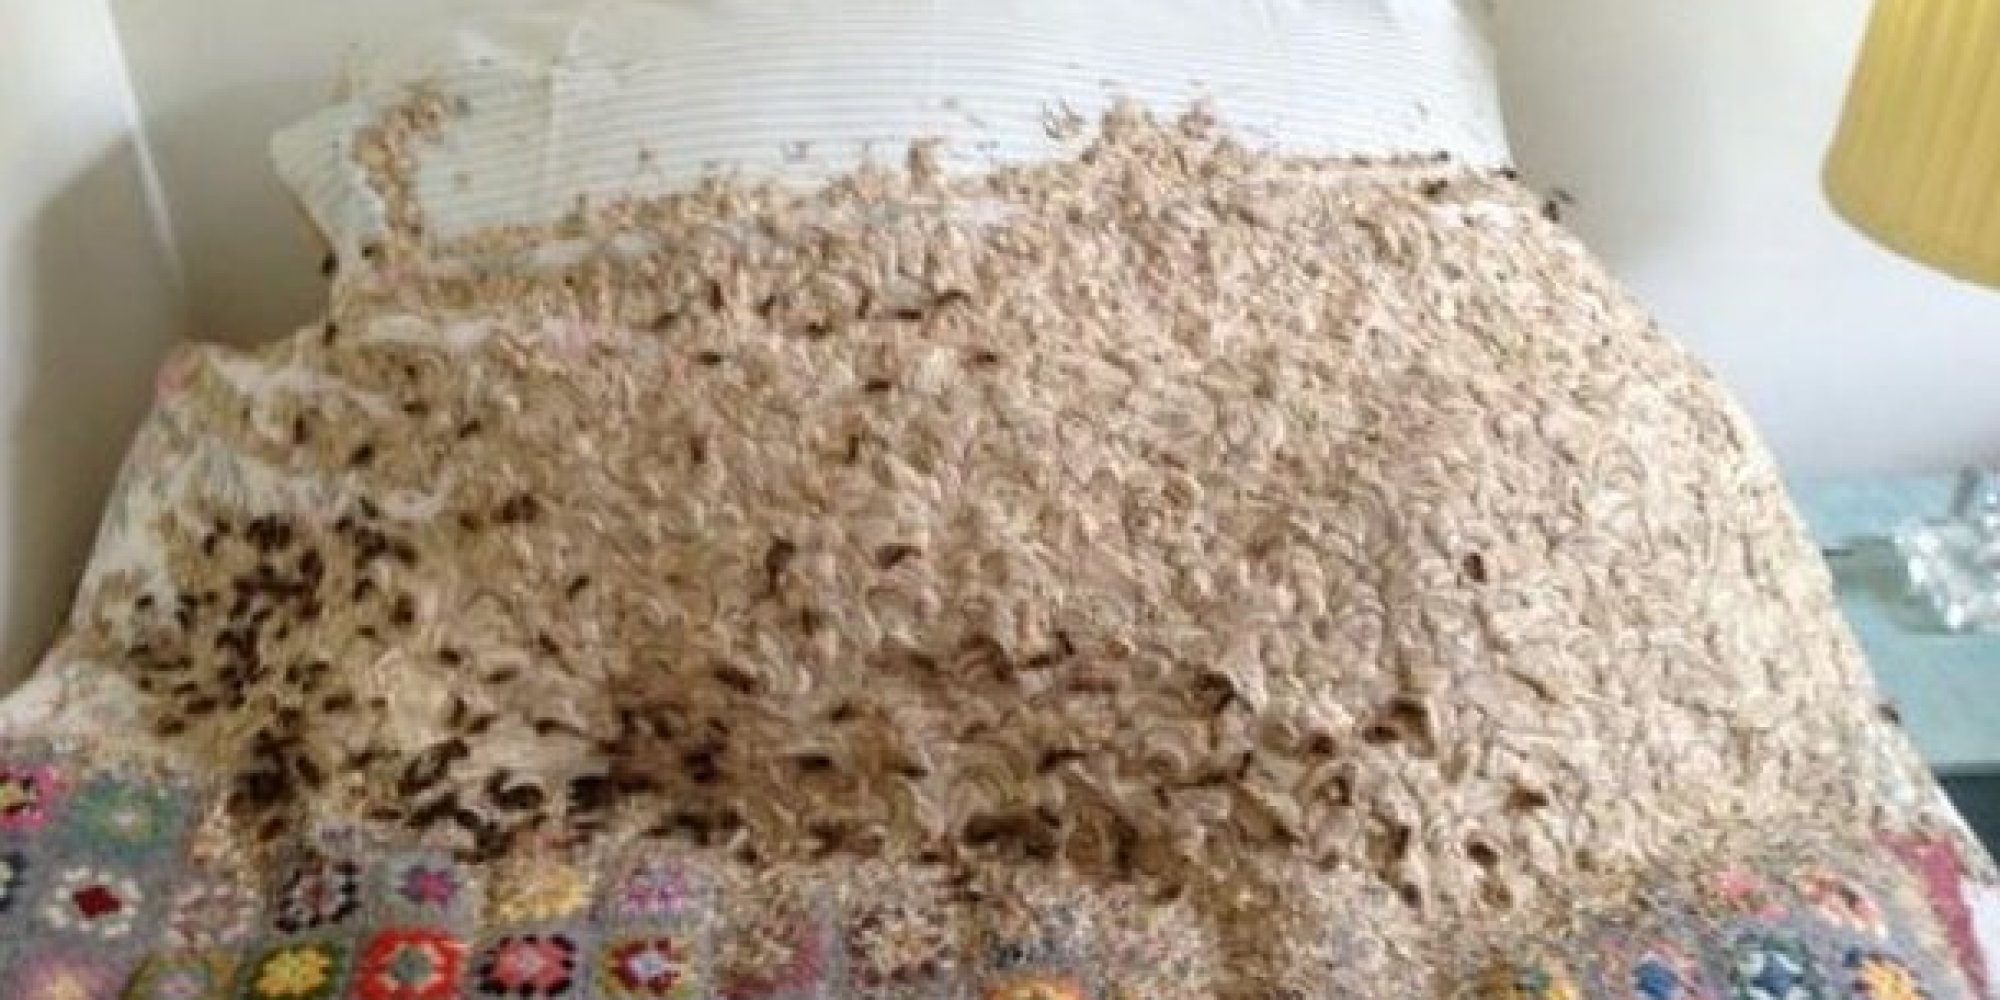 Best Giant Wasps Nest Discovered On Woman S Guest Bed Huffpost With Pictures